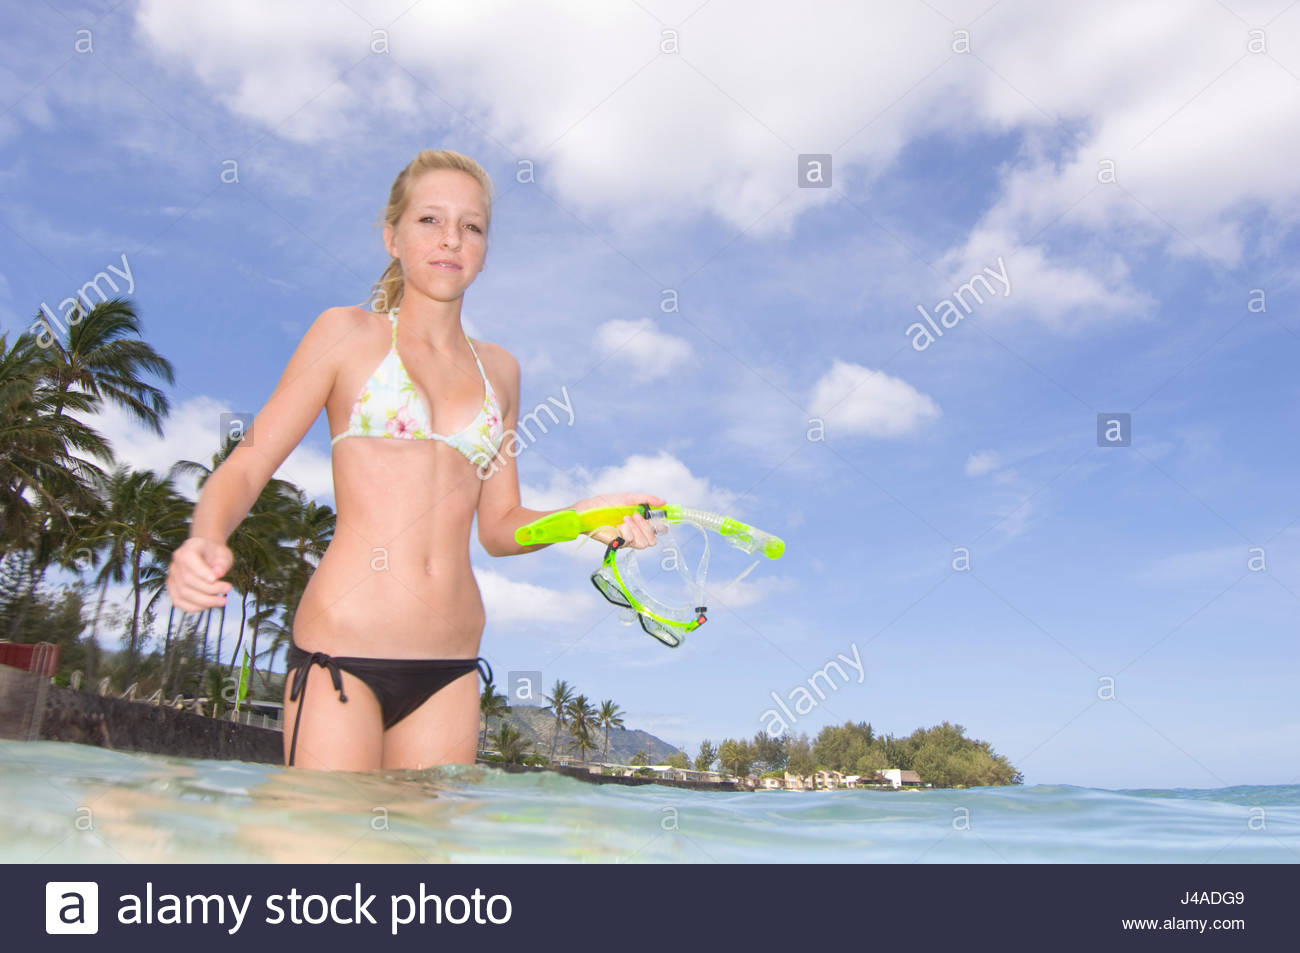 b9ecb6716c Teenage girl with blonde hair wearing a two piece swimsuit standing in the  warm water of the Pacific Ocean off Mokuleia Beach, Oahu, Hawaii, USA